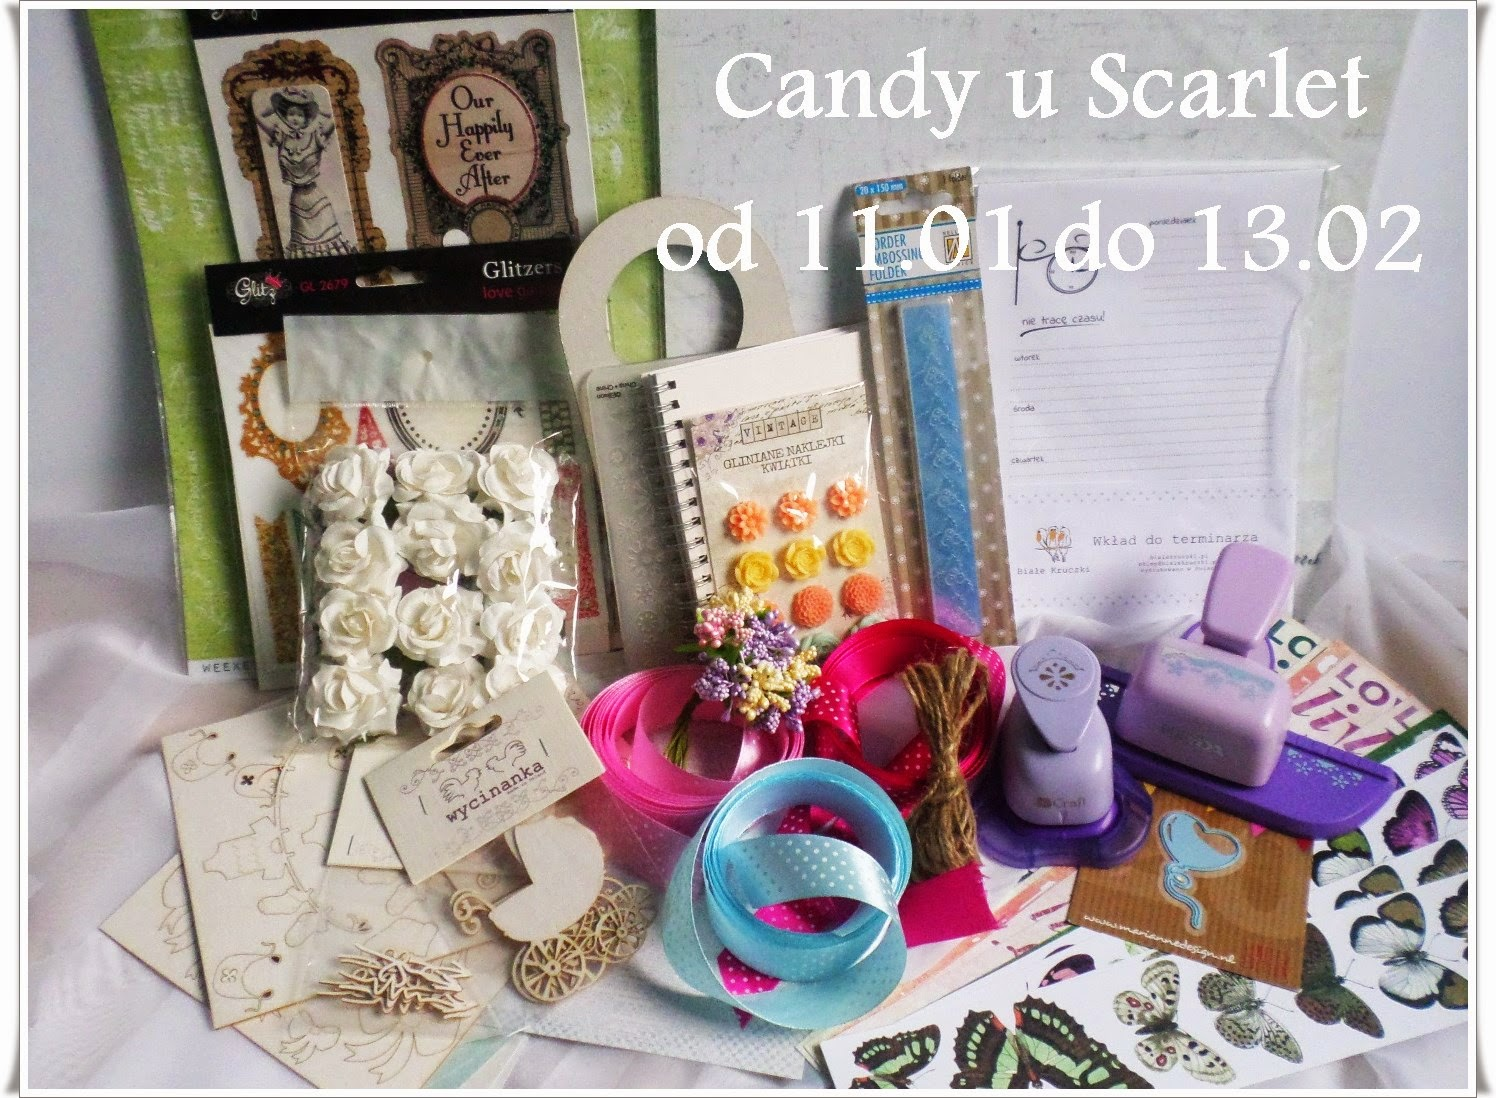 Candy do 13.02.15